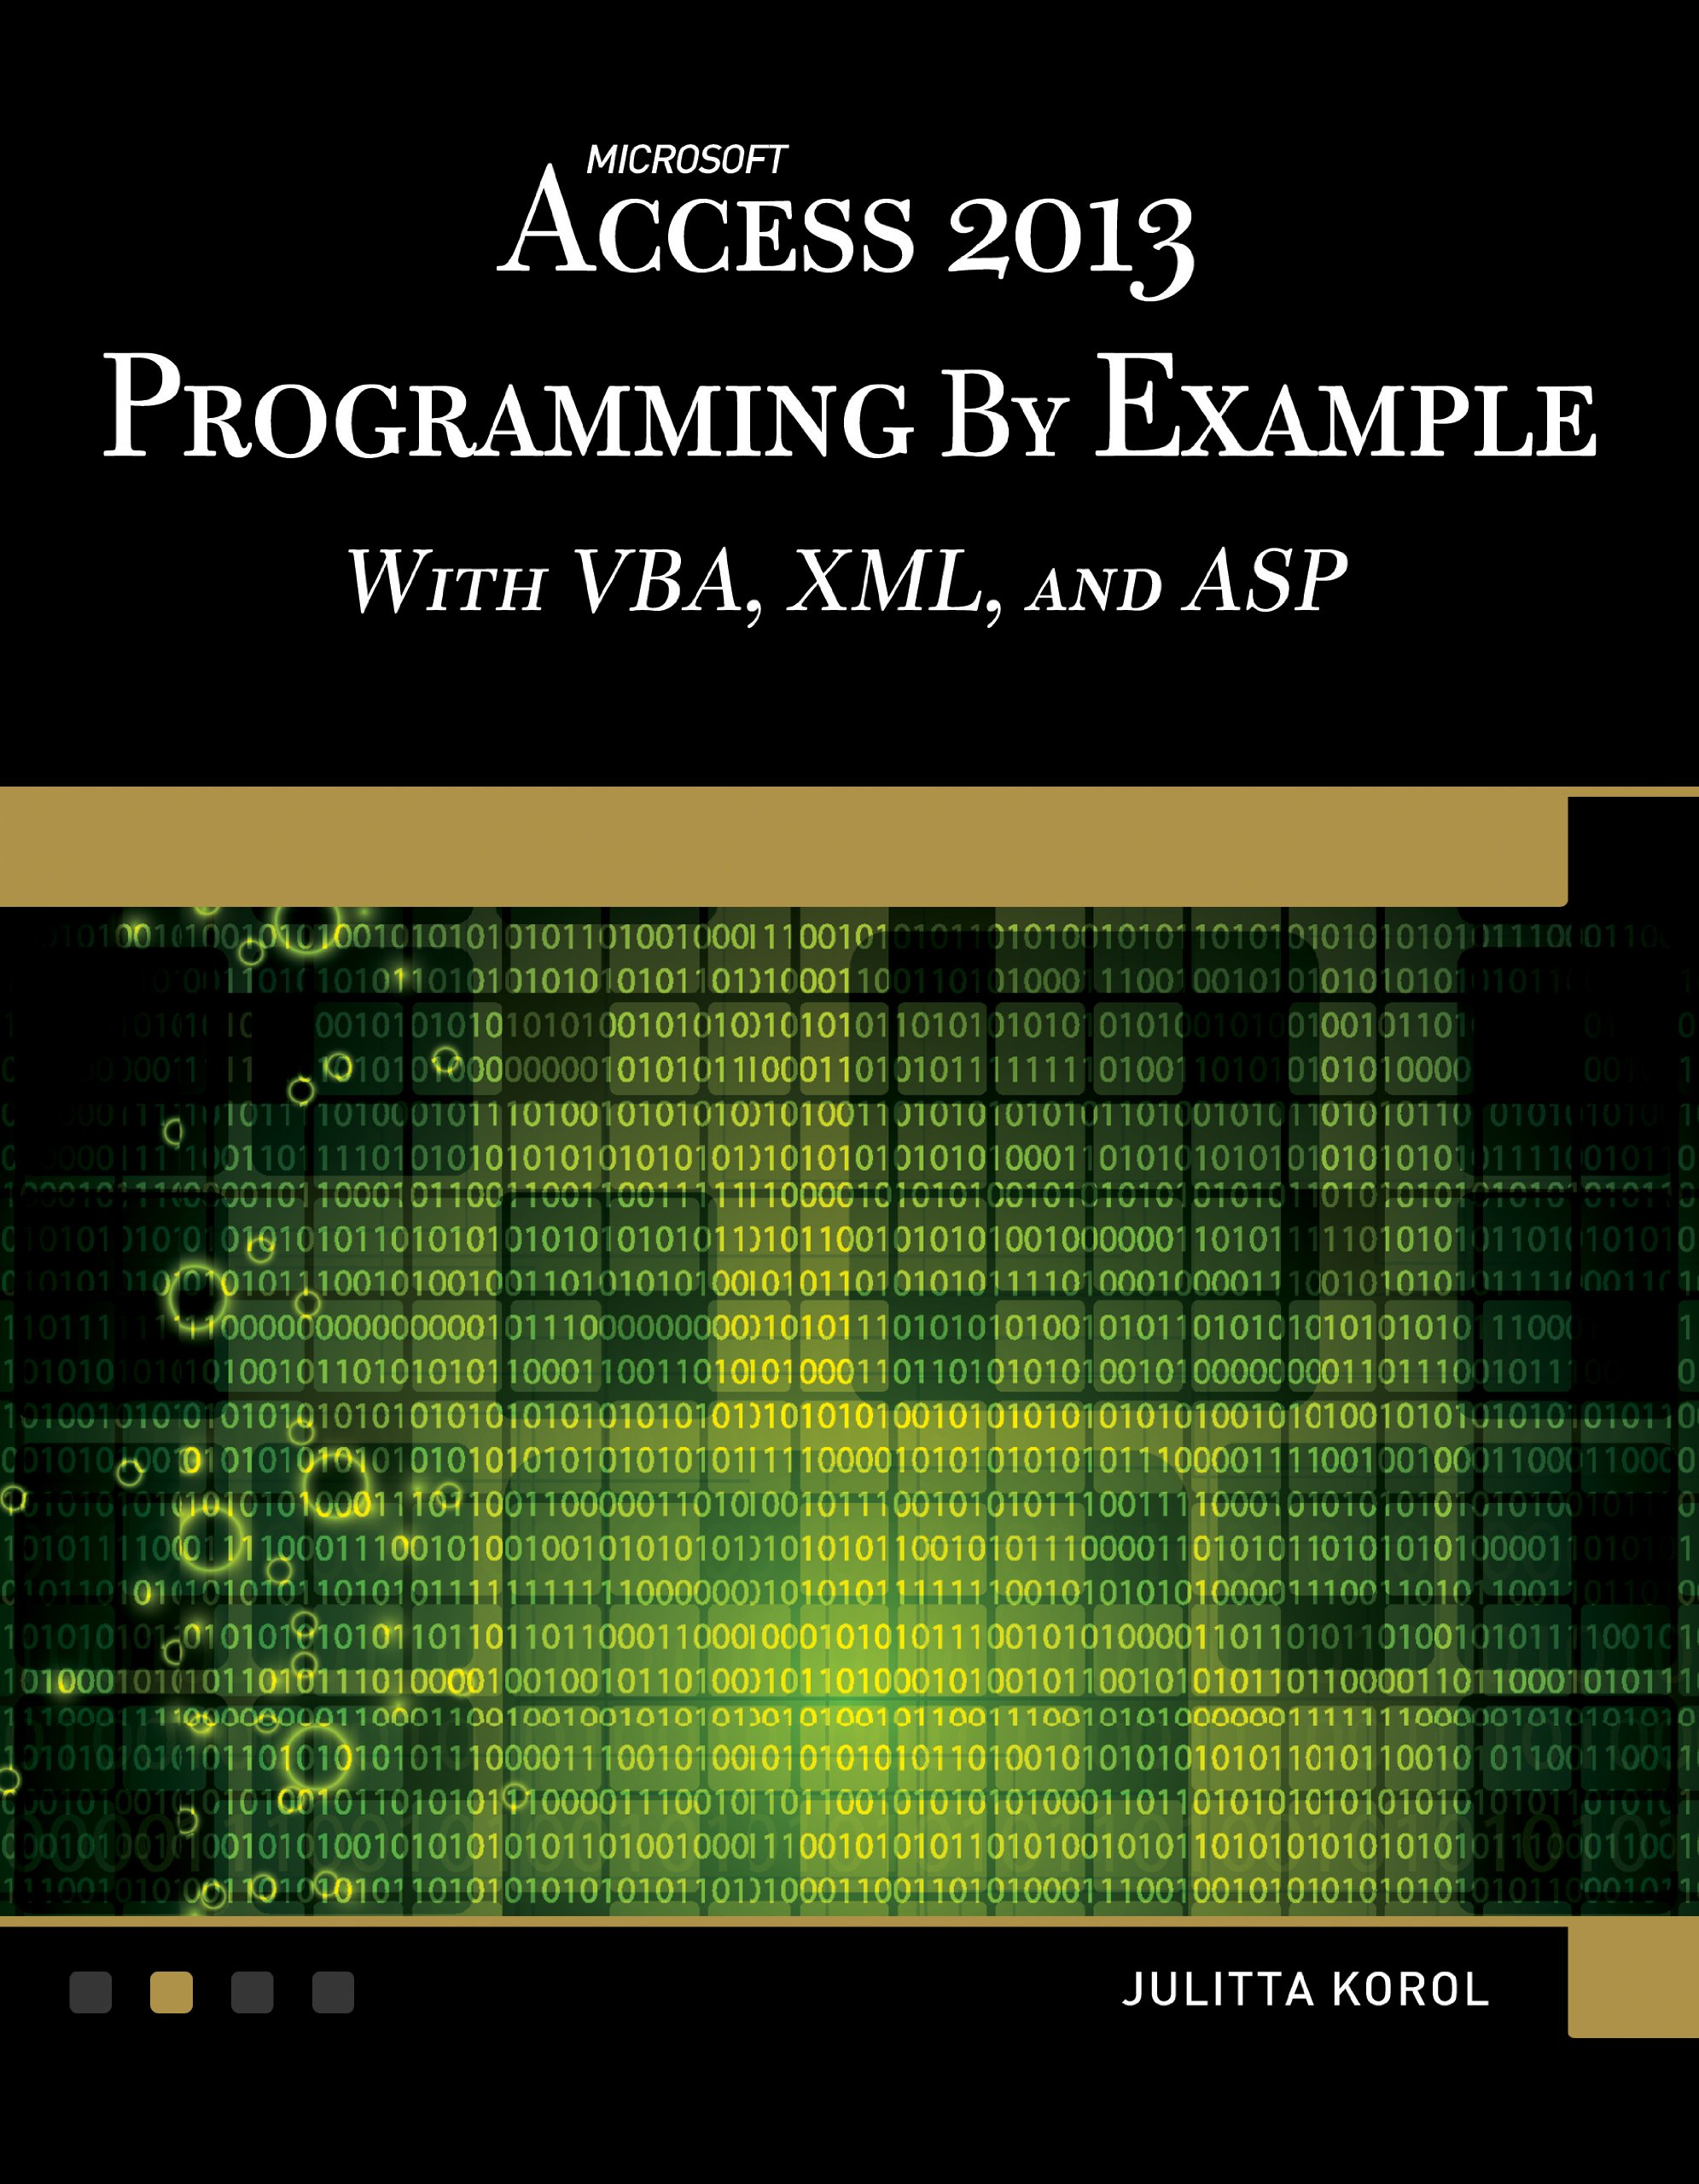 Amazon com: Microsoft Access 2013 Programming by Example with VBA